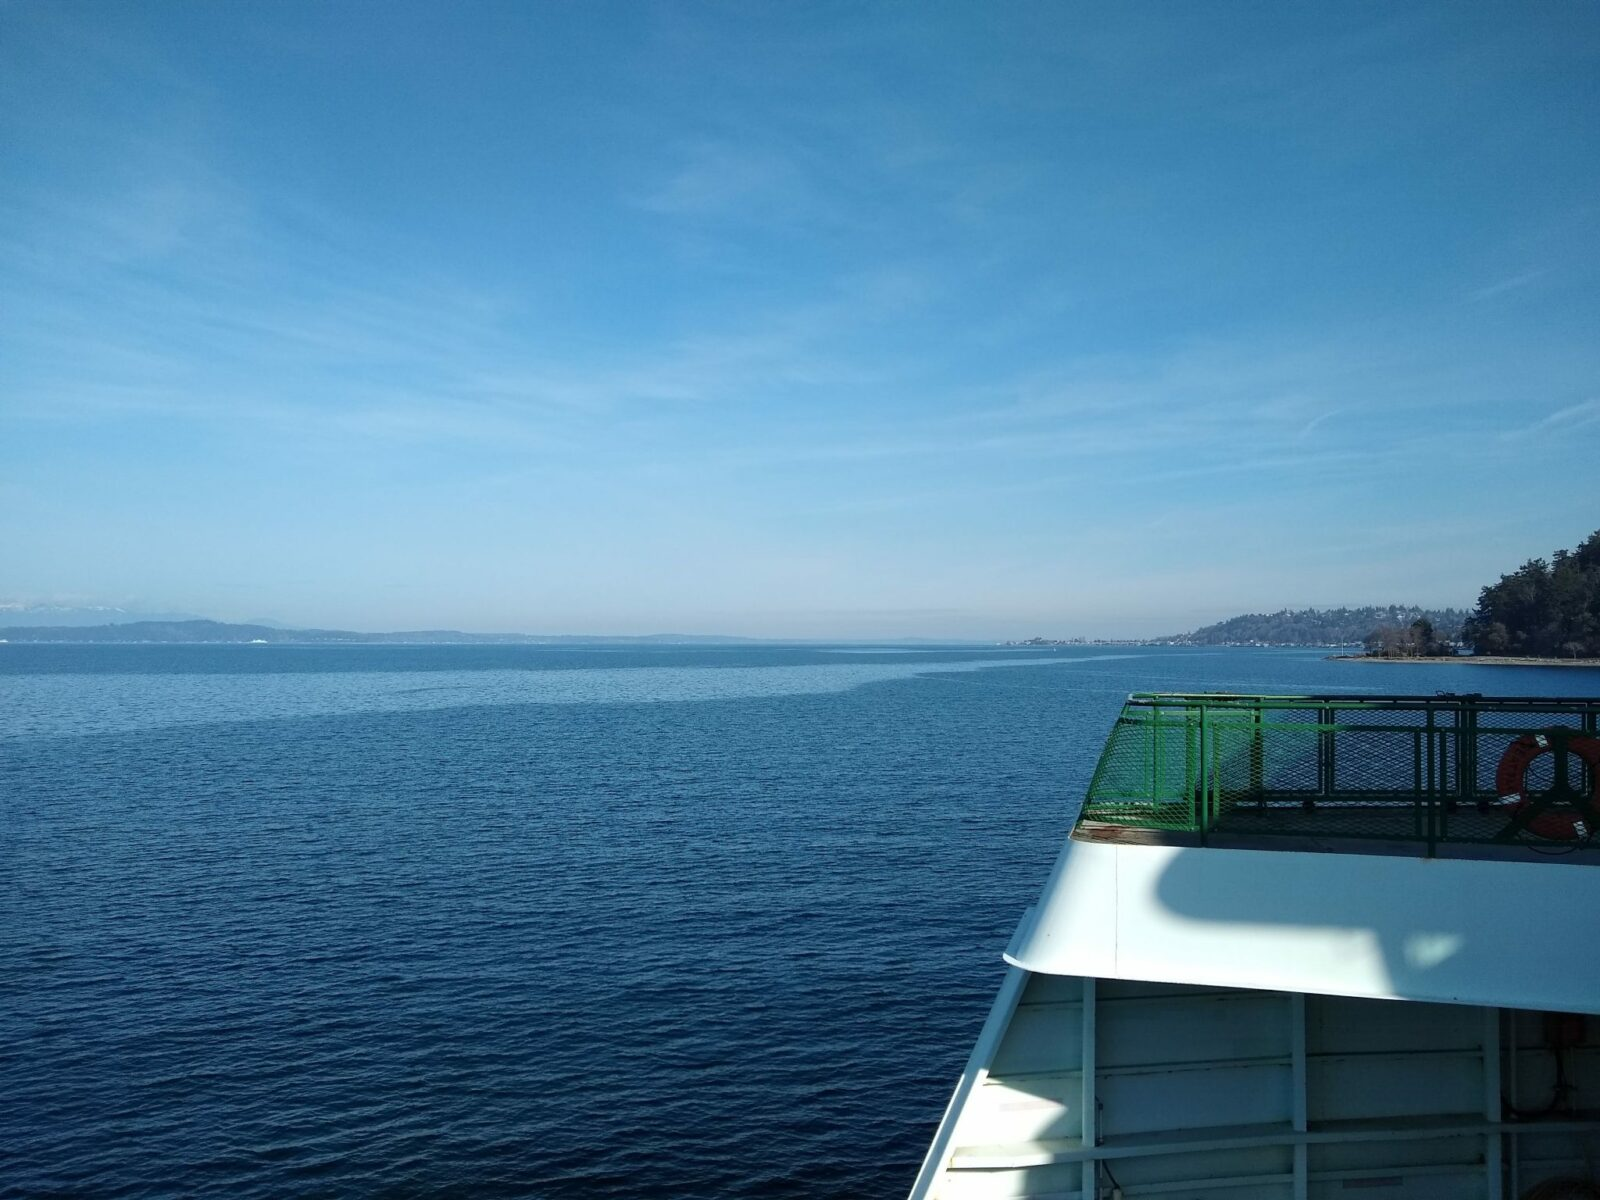 part of a ferry boat and the shoreline on a sunny day